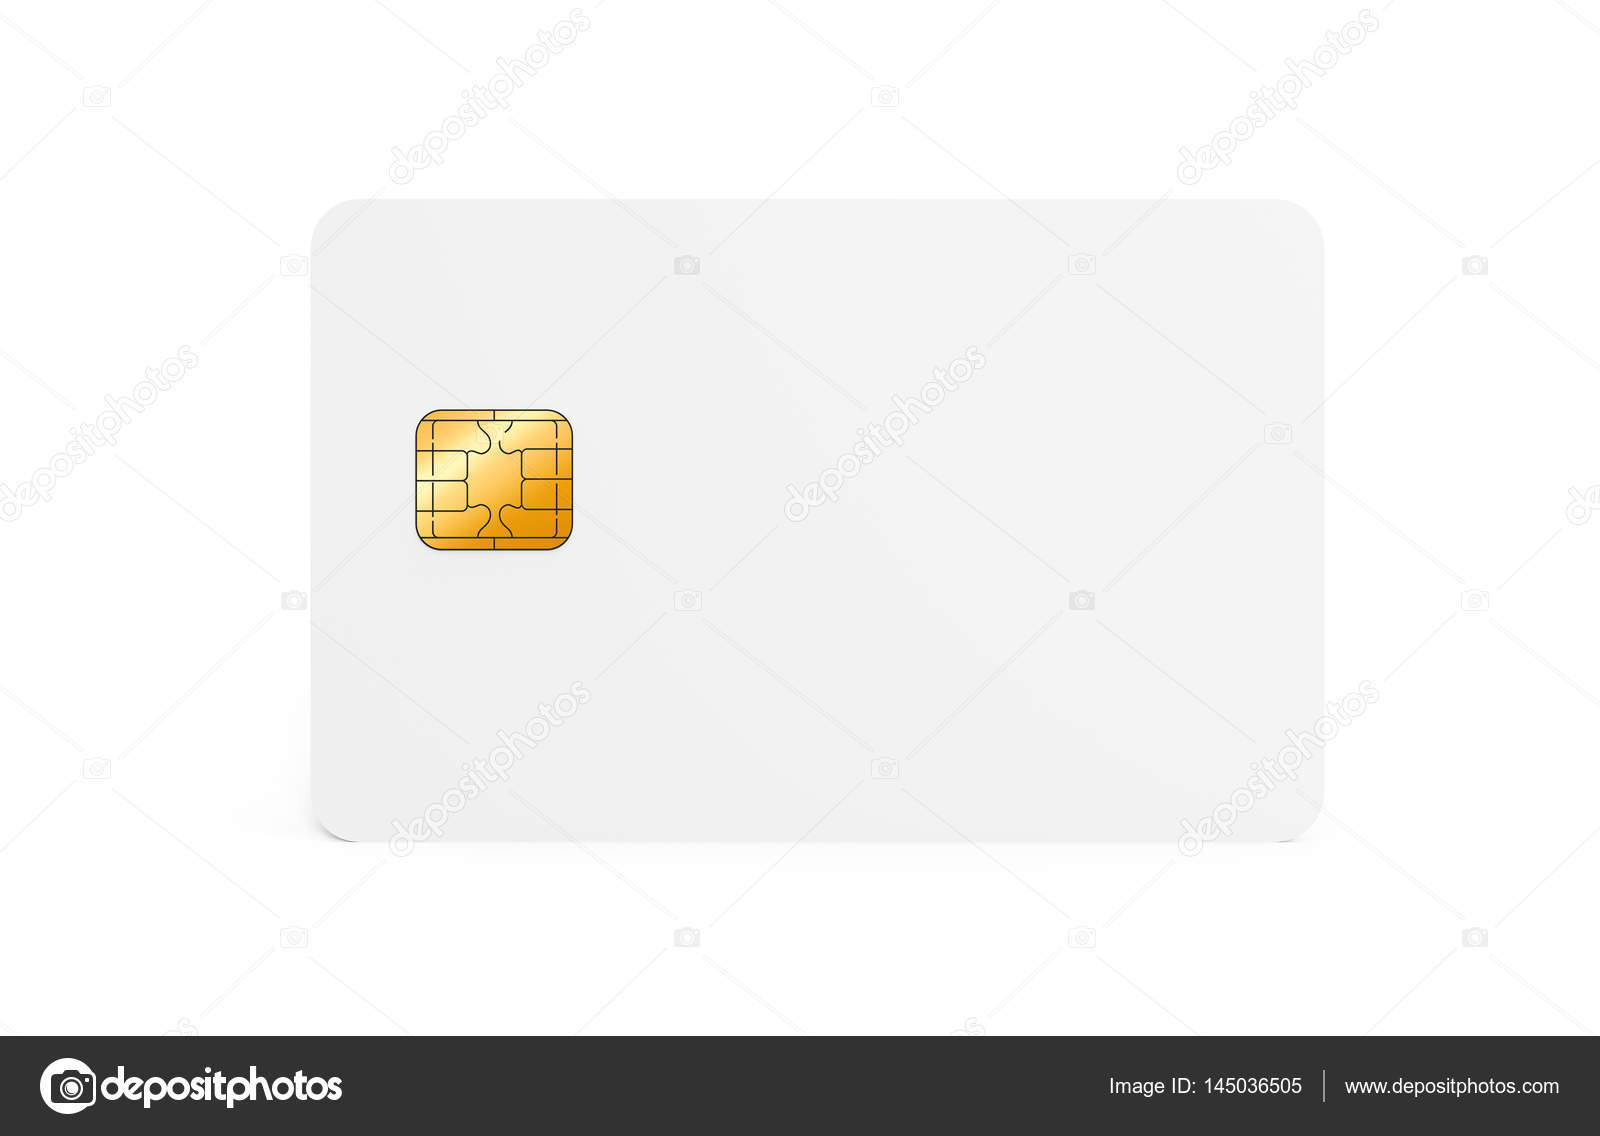 Blank credit card template — Stock Photo © HstrongART #145036505